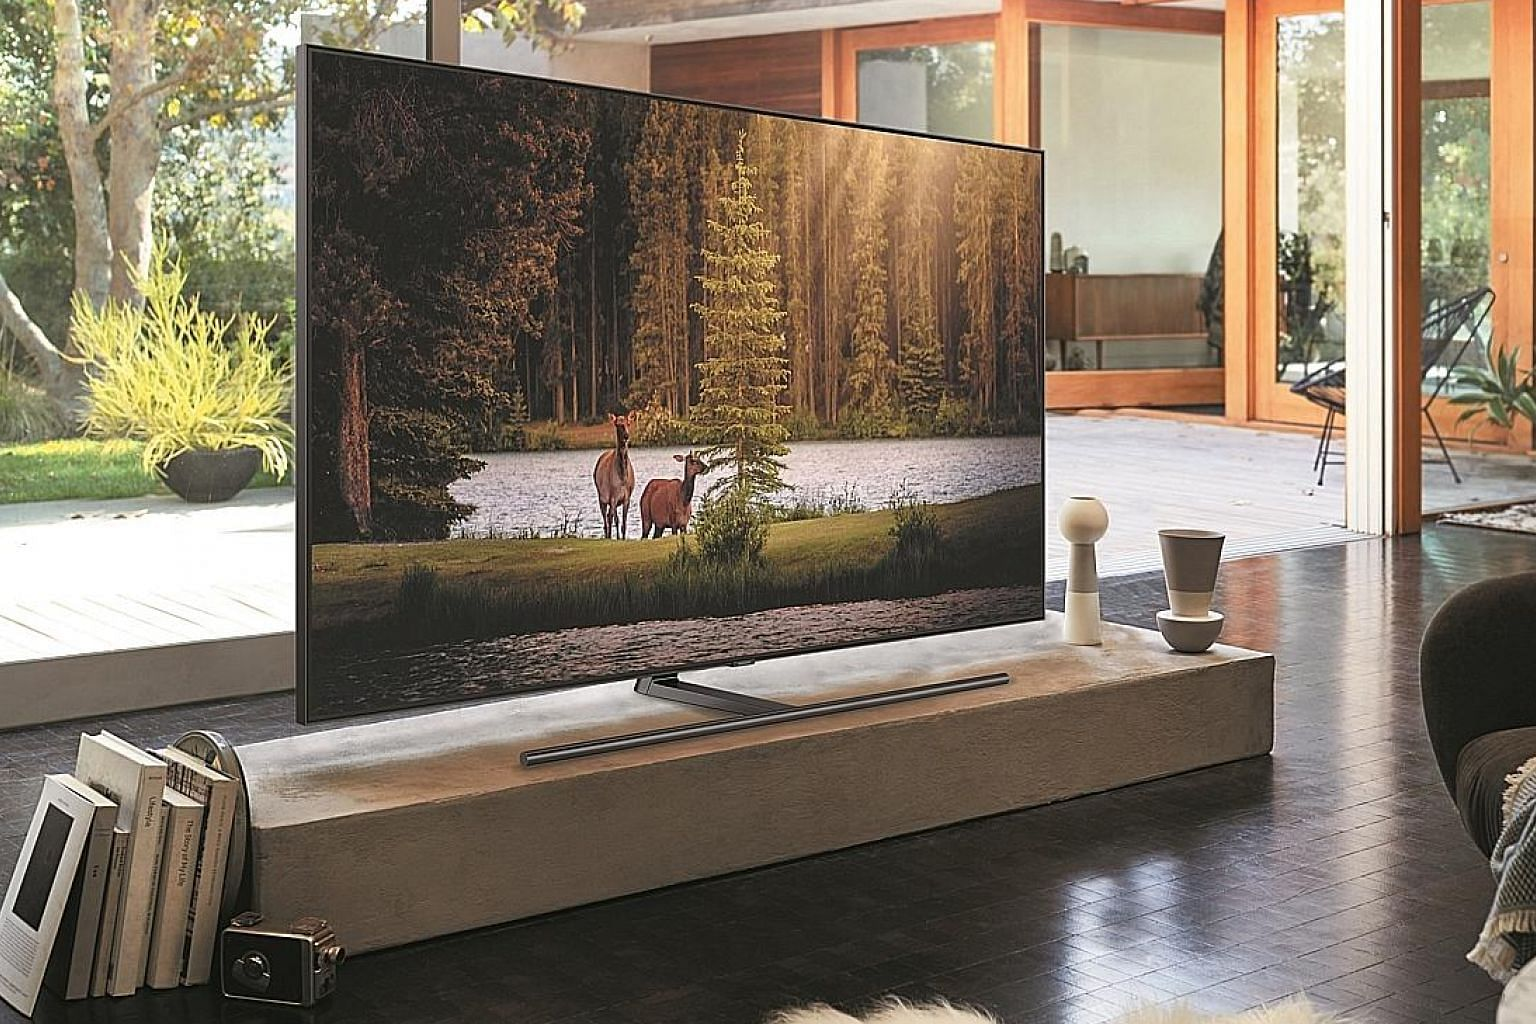 The Q9F looks best when playing high dynamic range (HDR) content such as 4K Blu-ray movies.